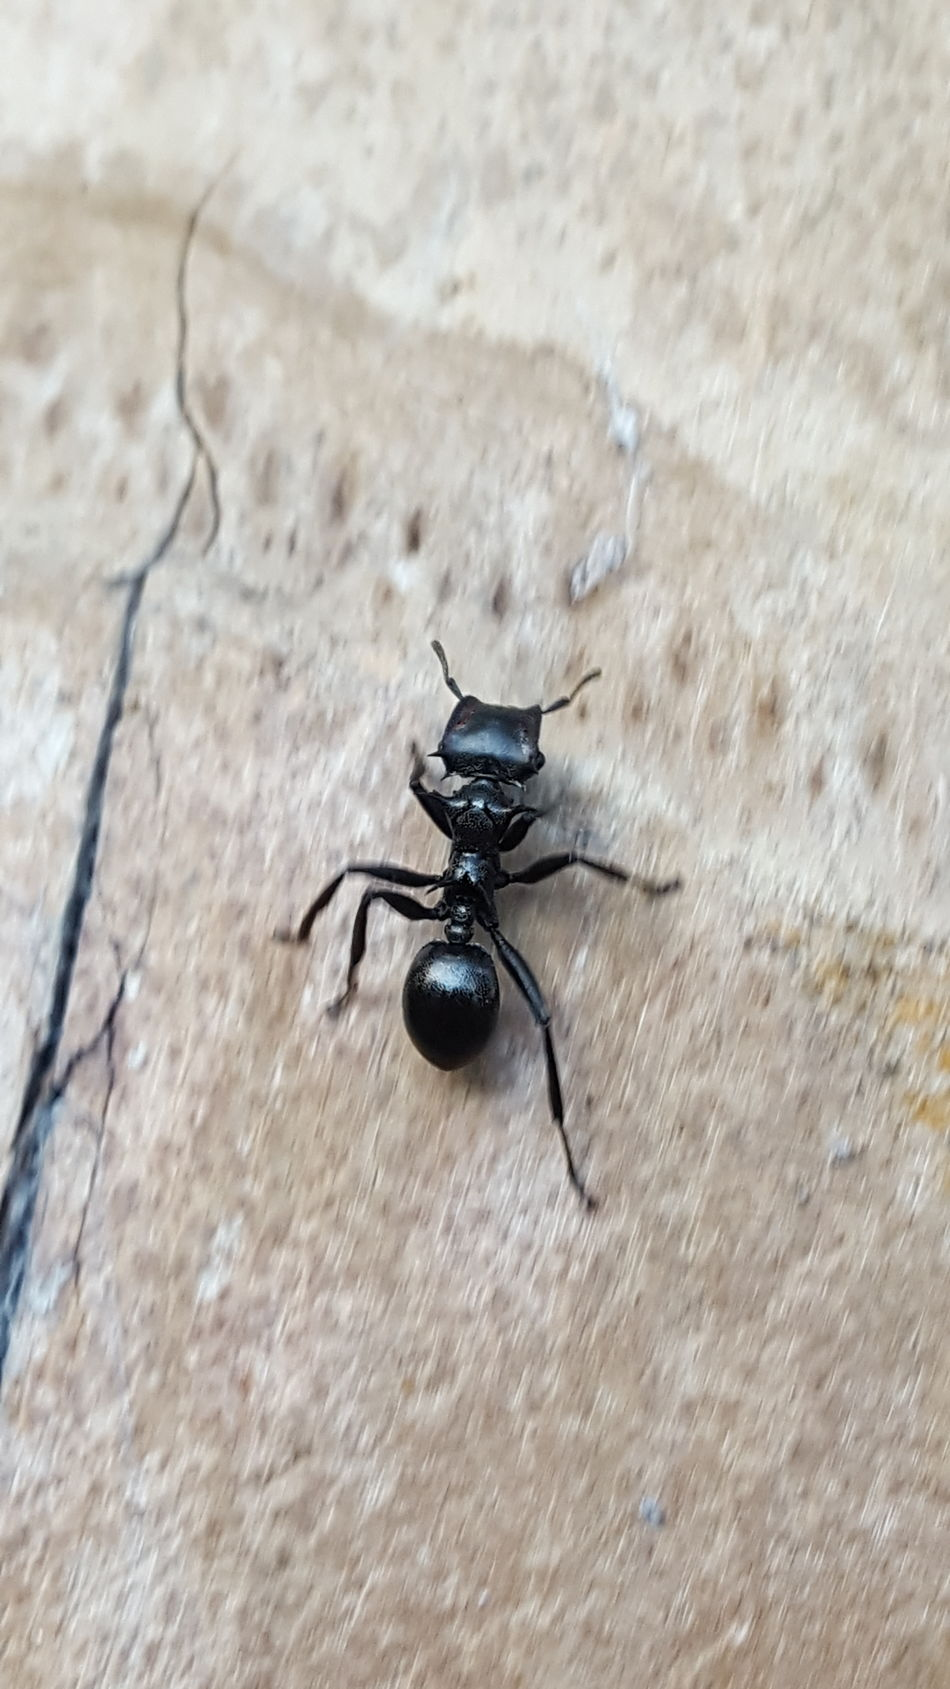 Insect Close-up Nature Outdoors Animal Wildlife Beauty In Nature Ant Black Ant